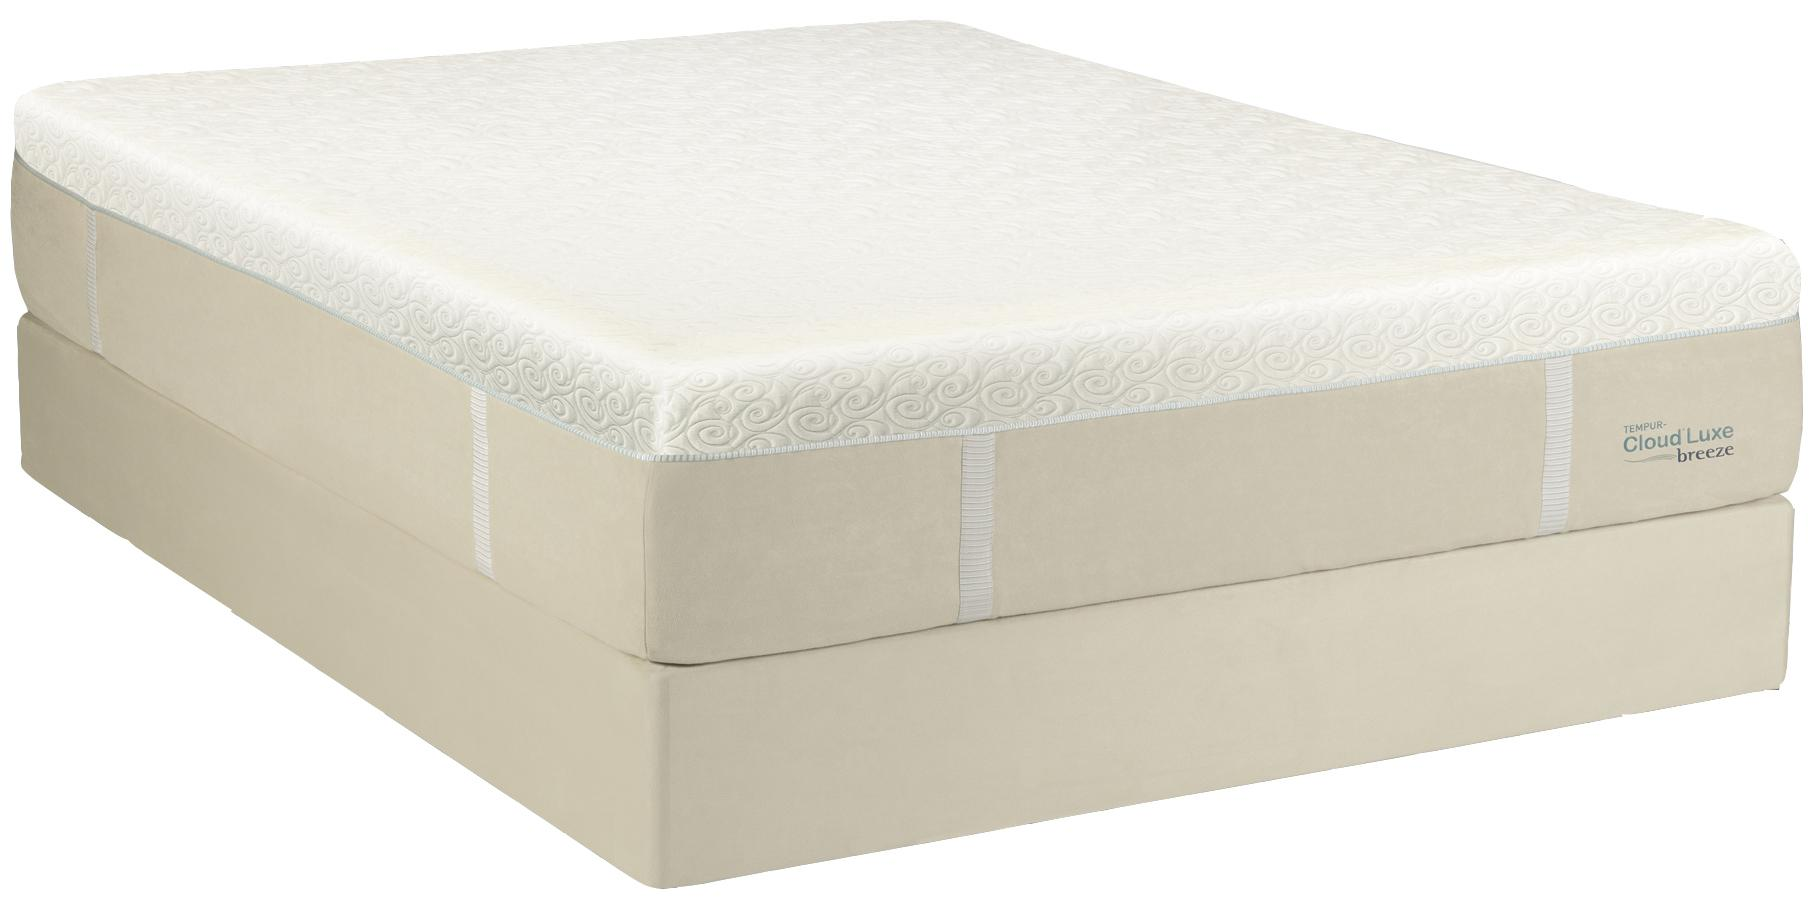 Tempur-Pedic® TEMPUR-Cloud® Luxe Breeze Twin XL Ultra Soft Mattress - Item Number: 10109120